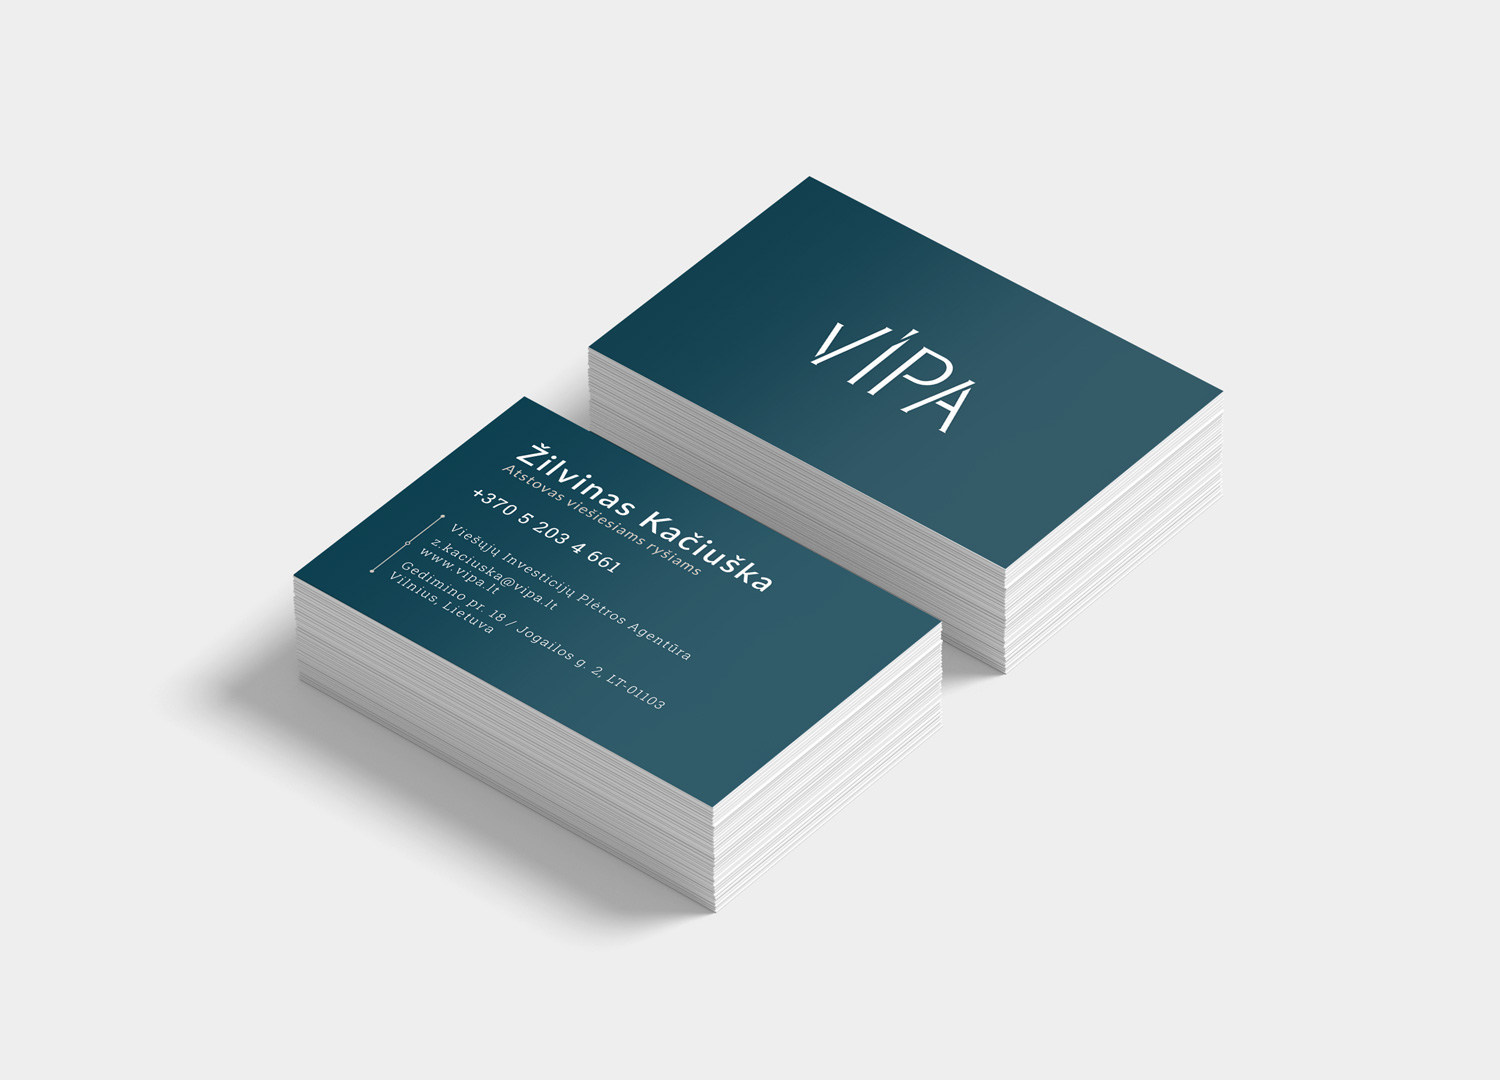 Vipa-business-cards-VJS-agency.jpg